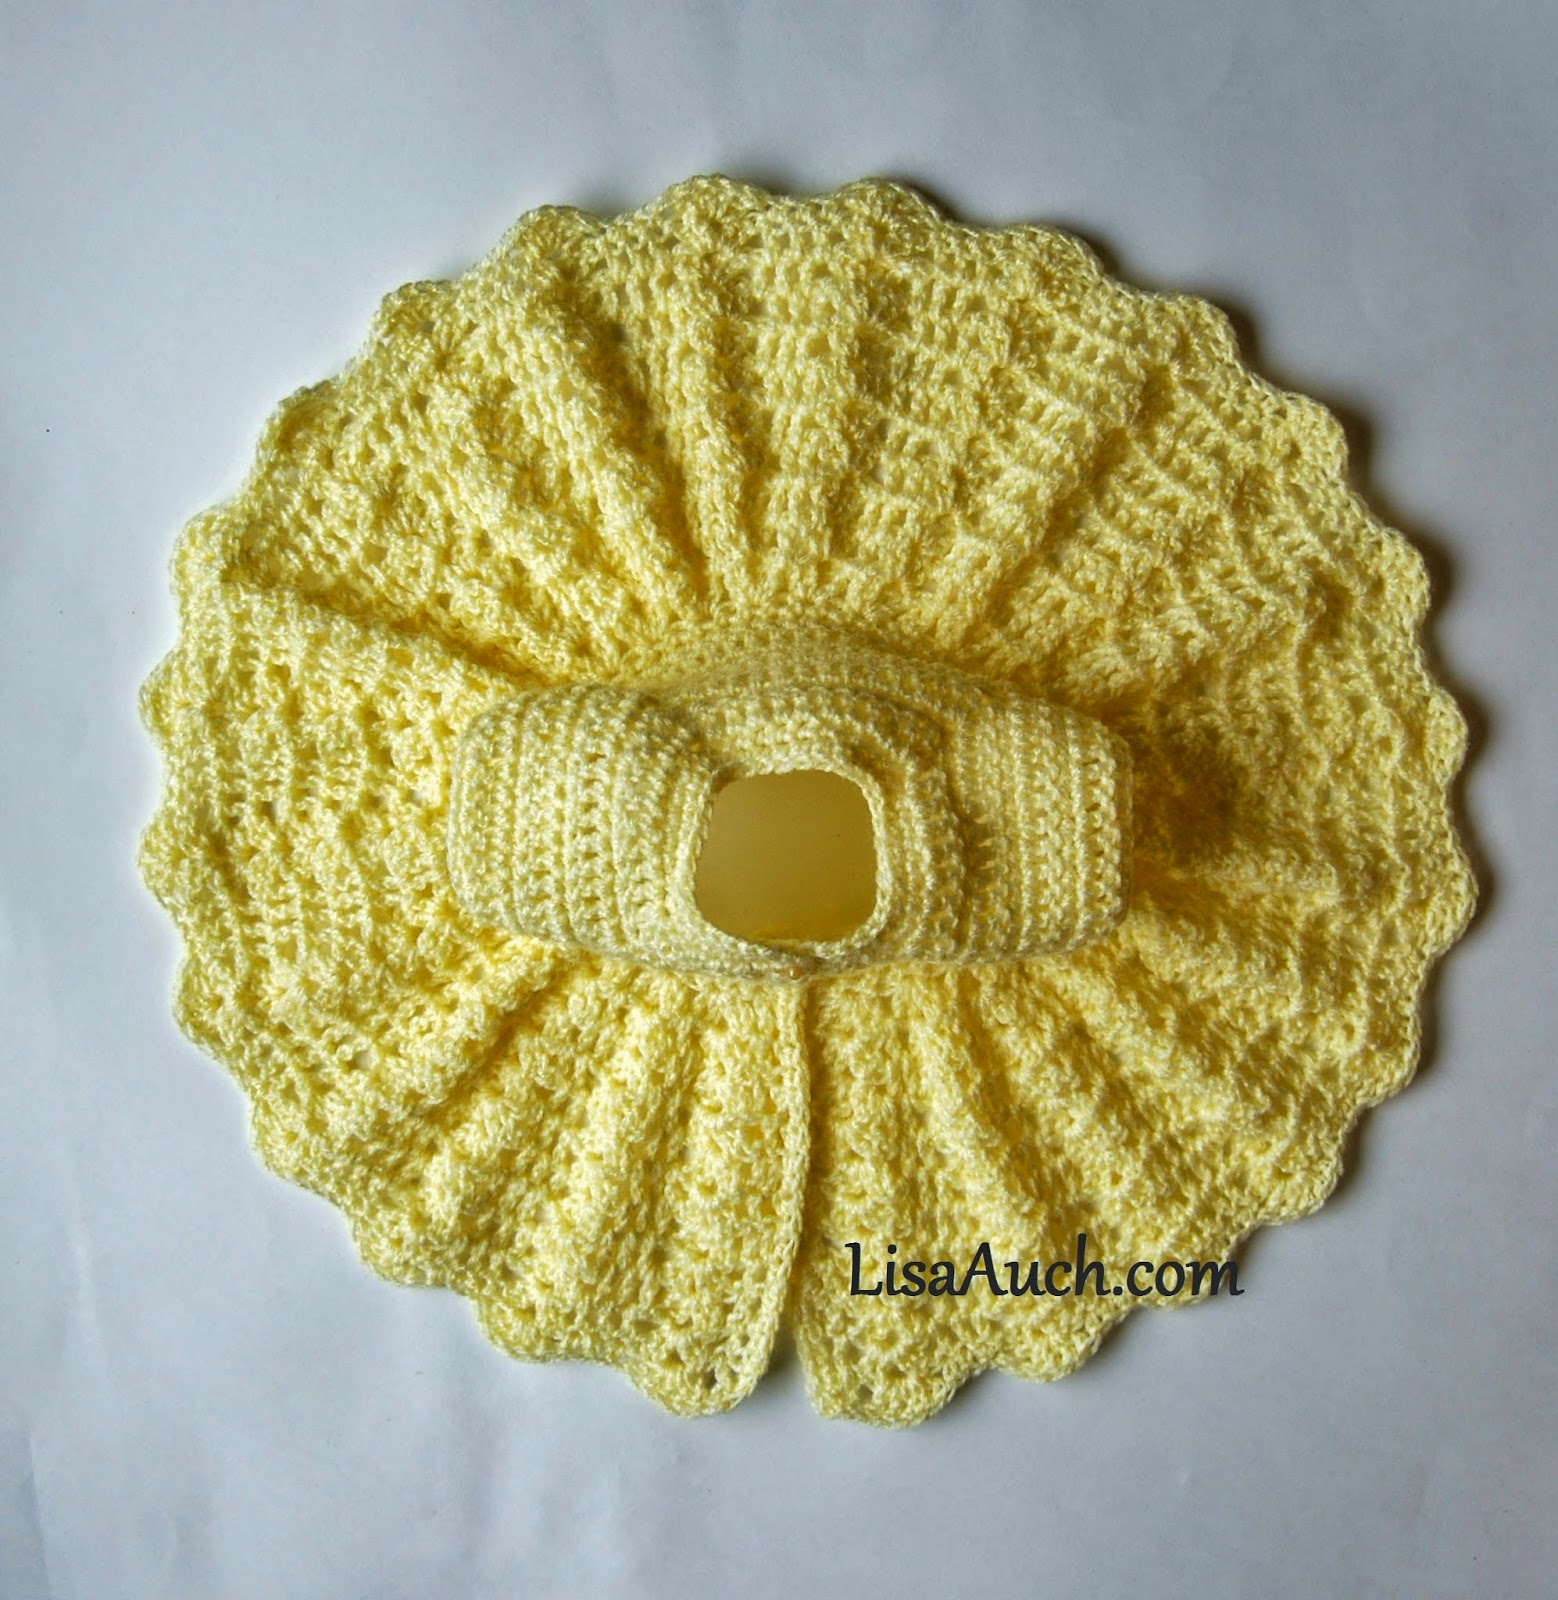 Free Crochet Pattern for a Vintage modern Style Baby Cardigan